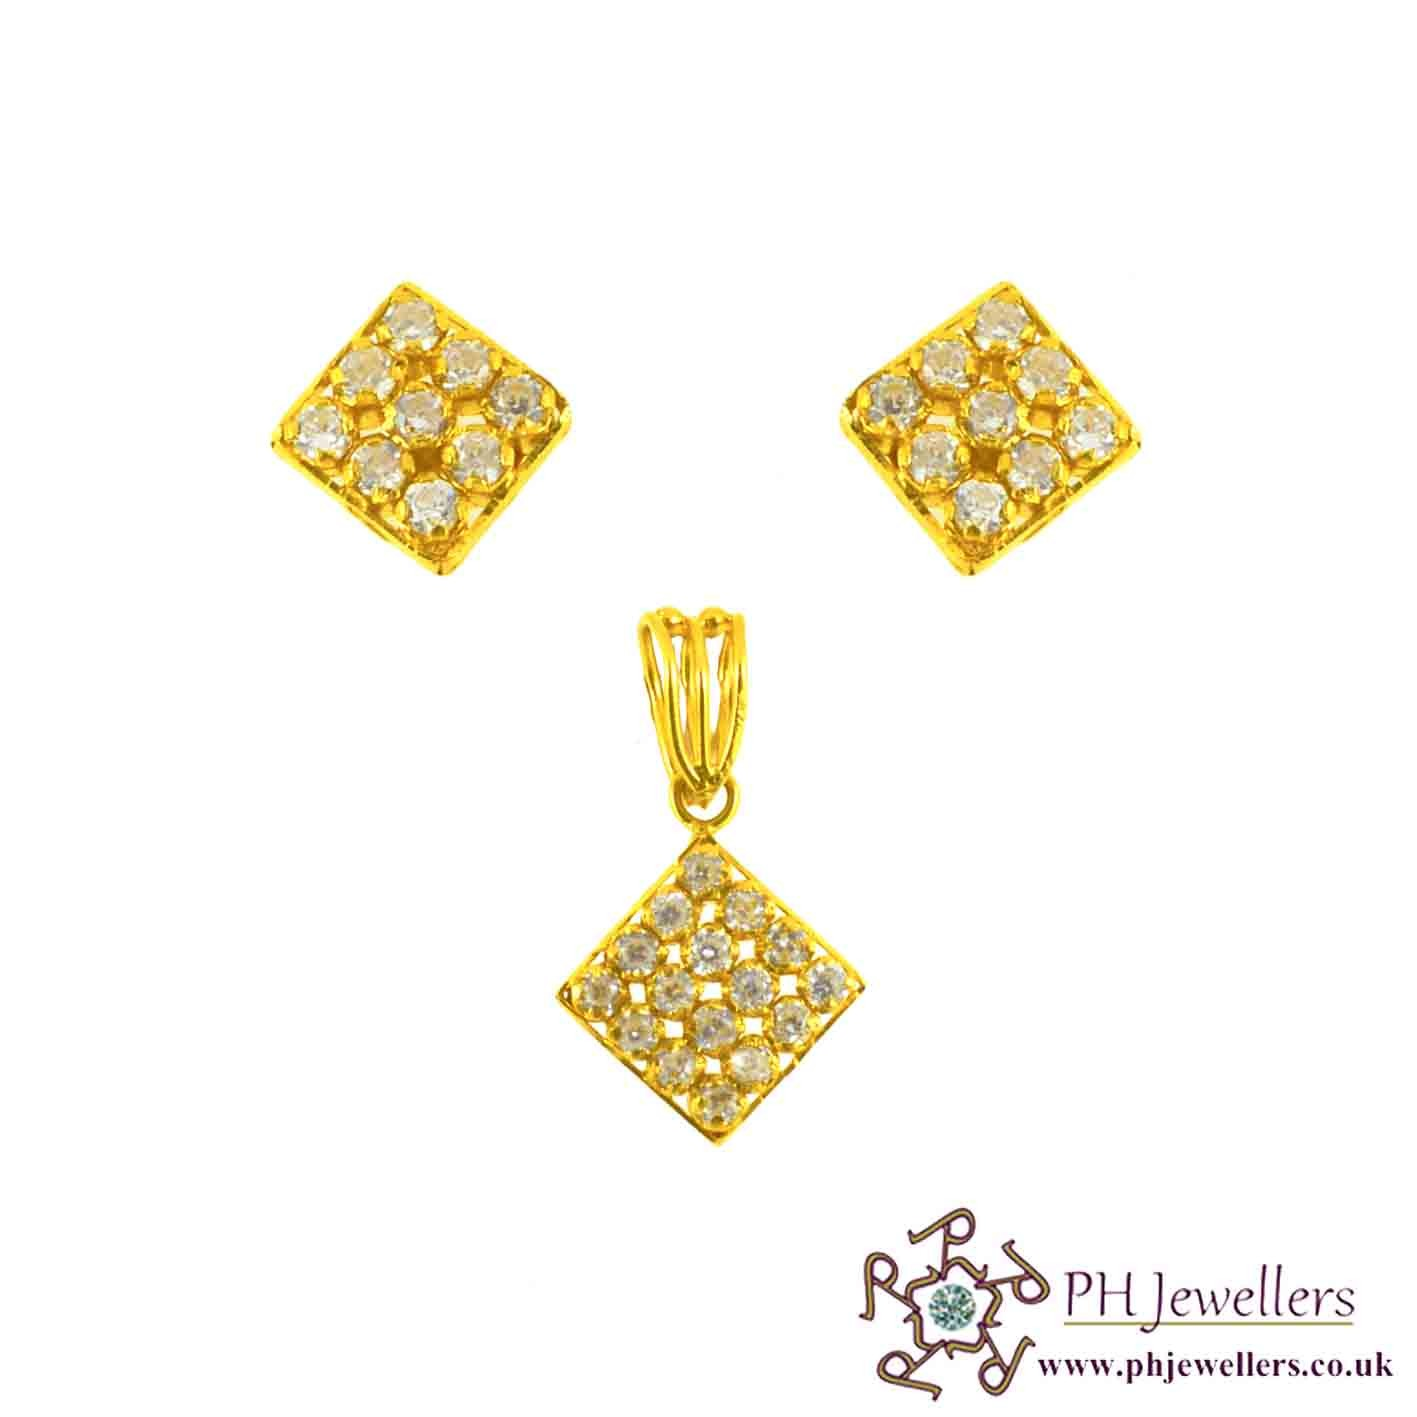 22ct 916 Hallmark Yellow Gold Square Pendant Set CZ PS21